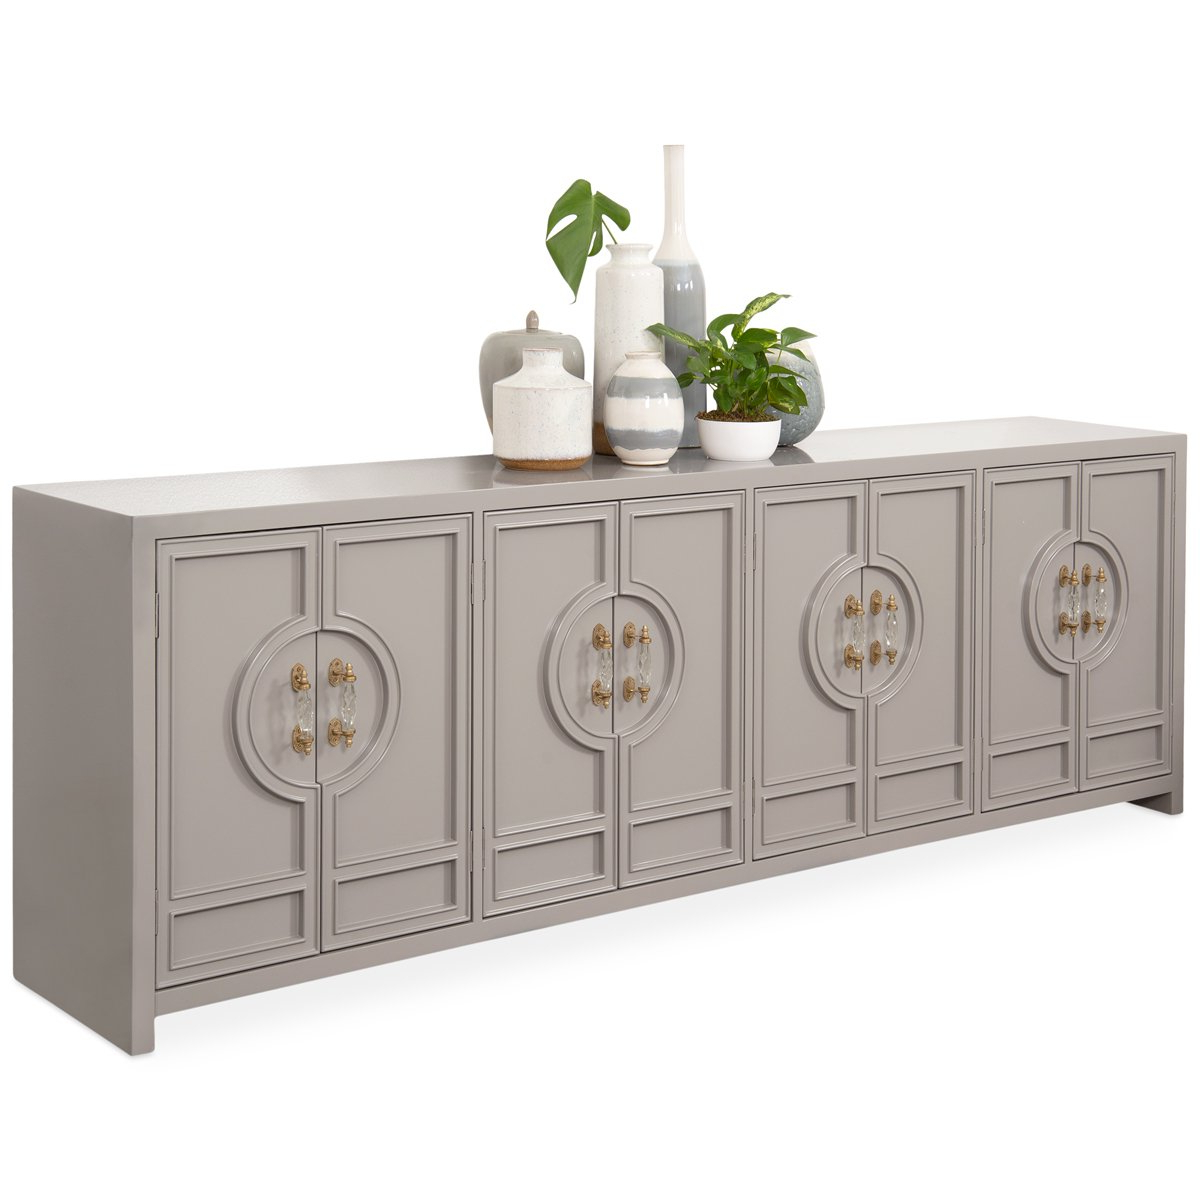 Widely Used Pinterest – Österreich Pertaining To Tavant Sideboards (View 20 of 20)